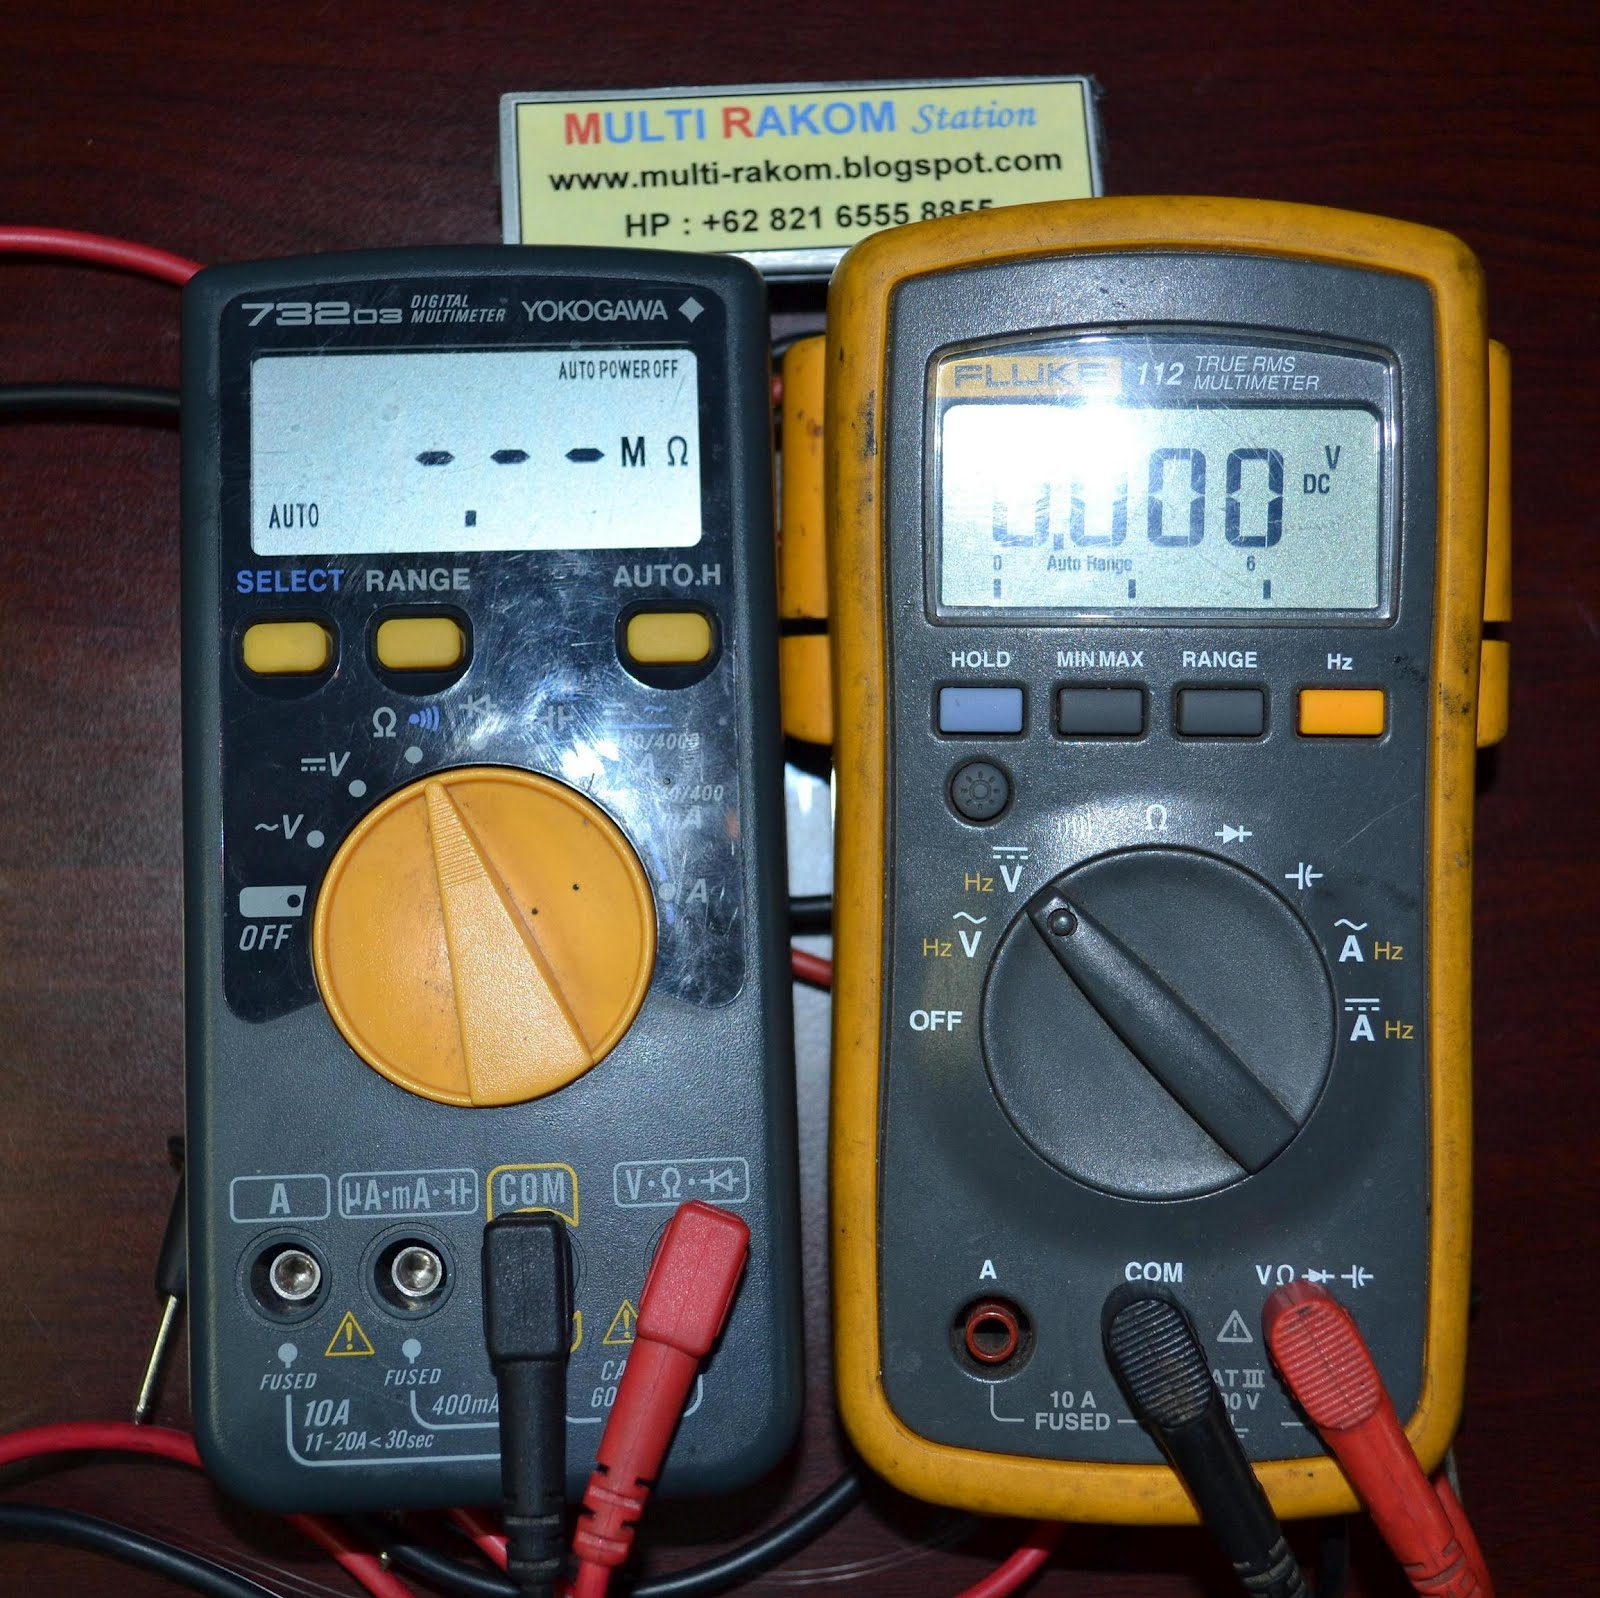 Digital Multimeter YOKOGAWA &amp; FLUKE